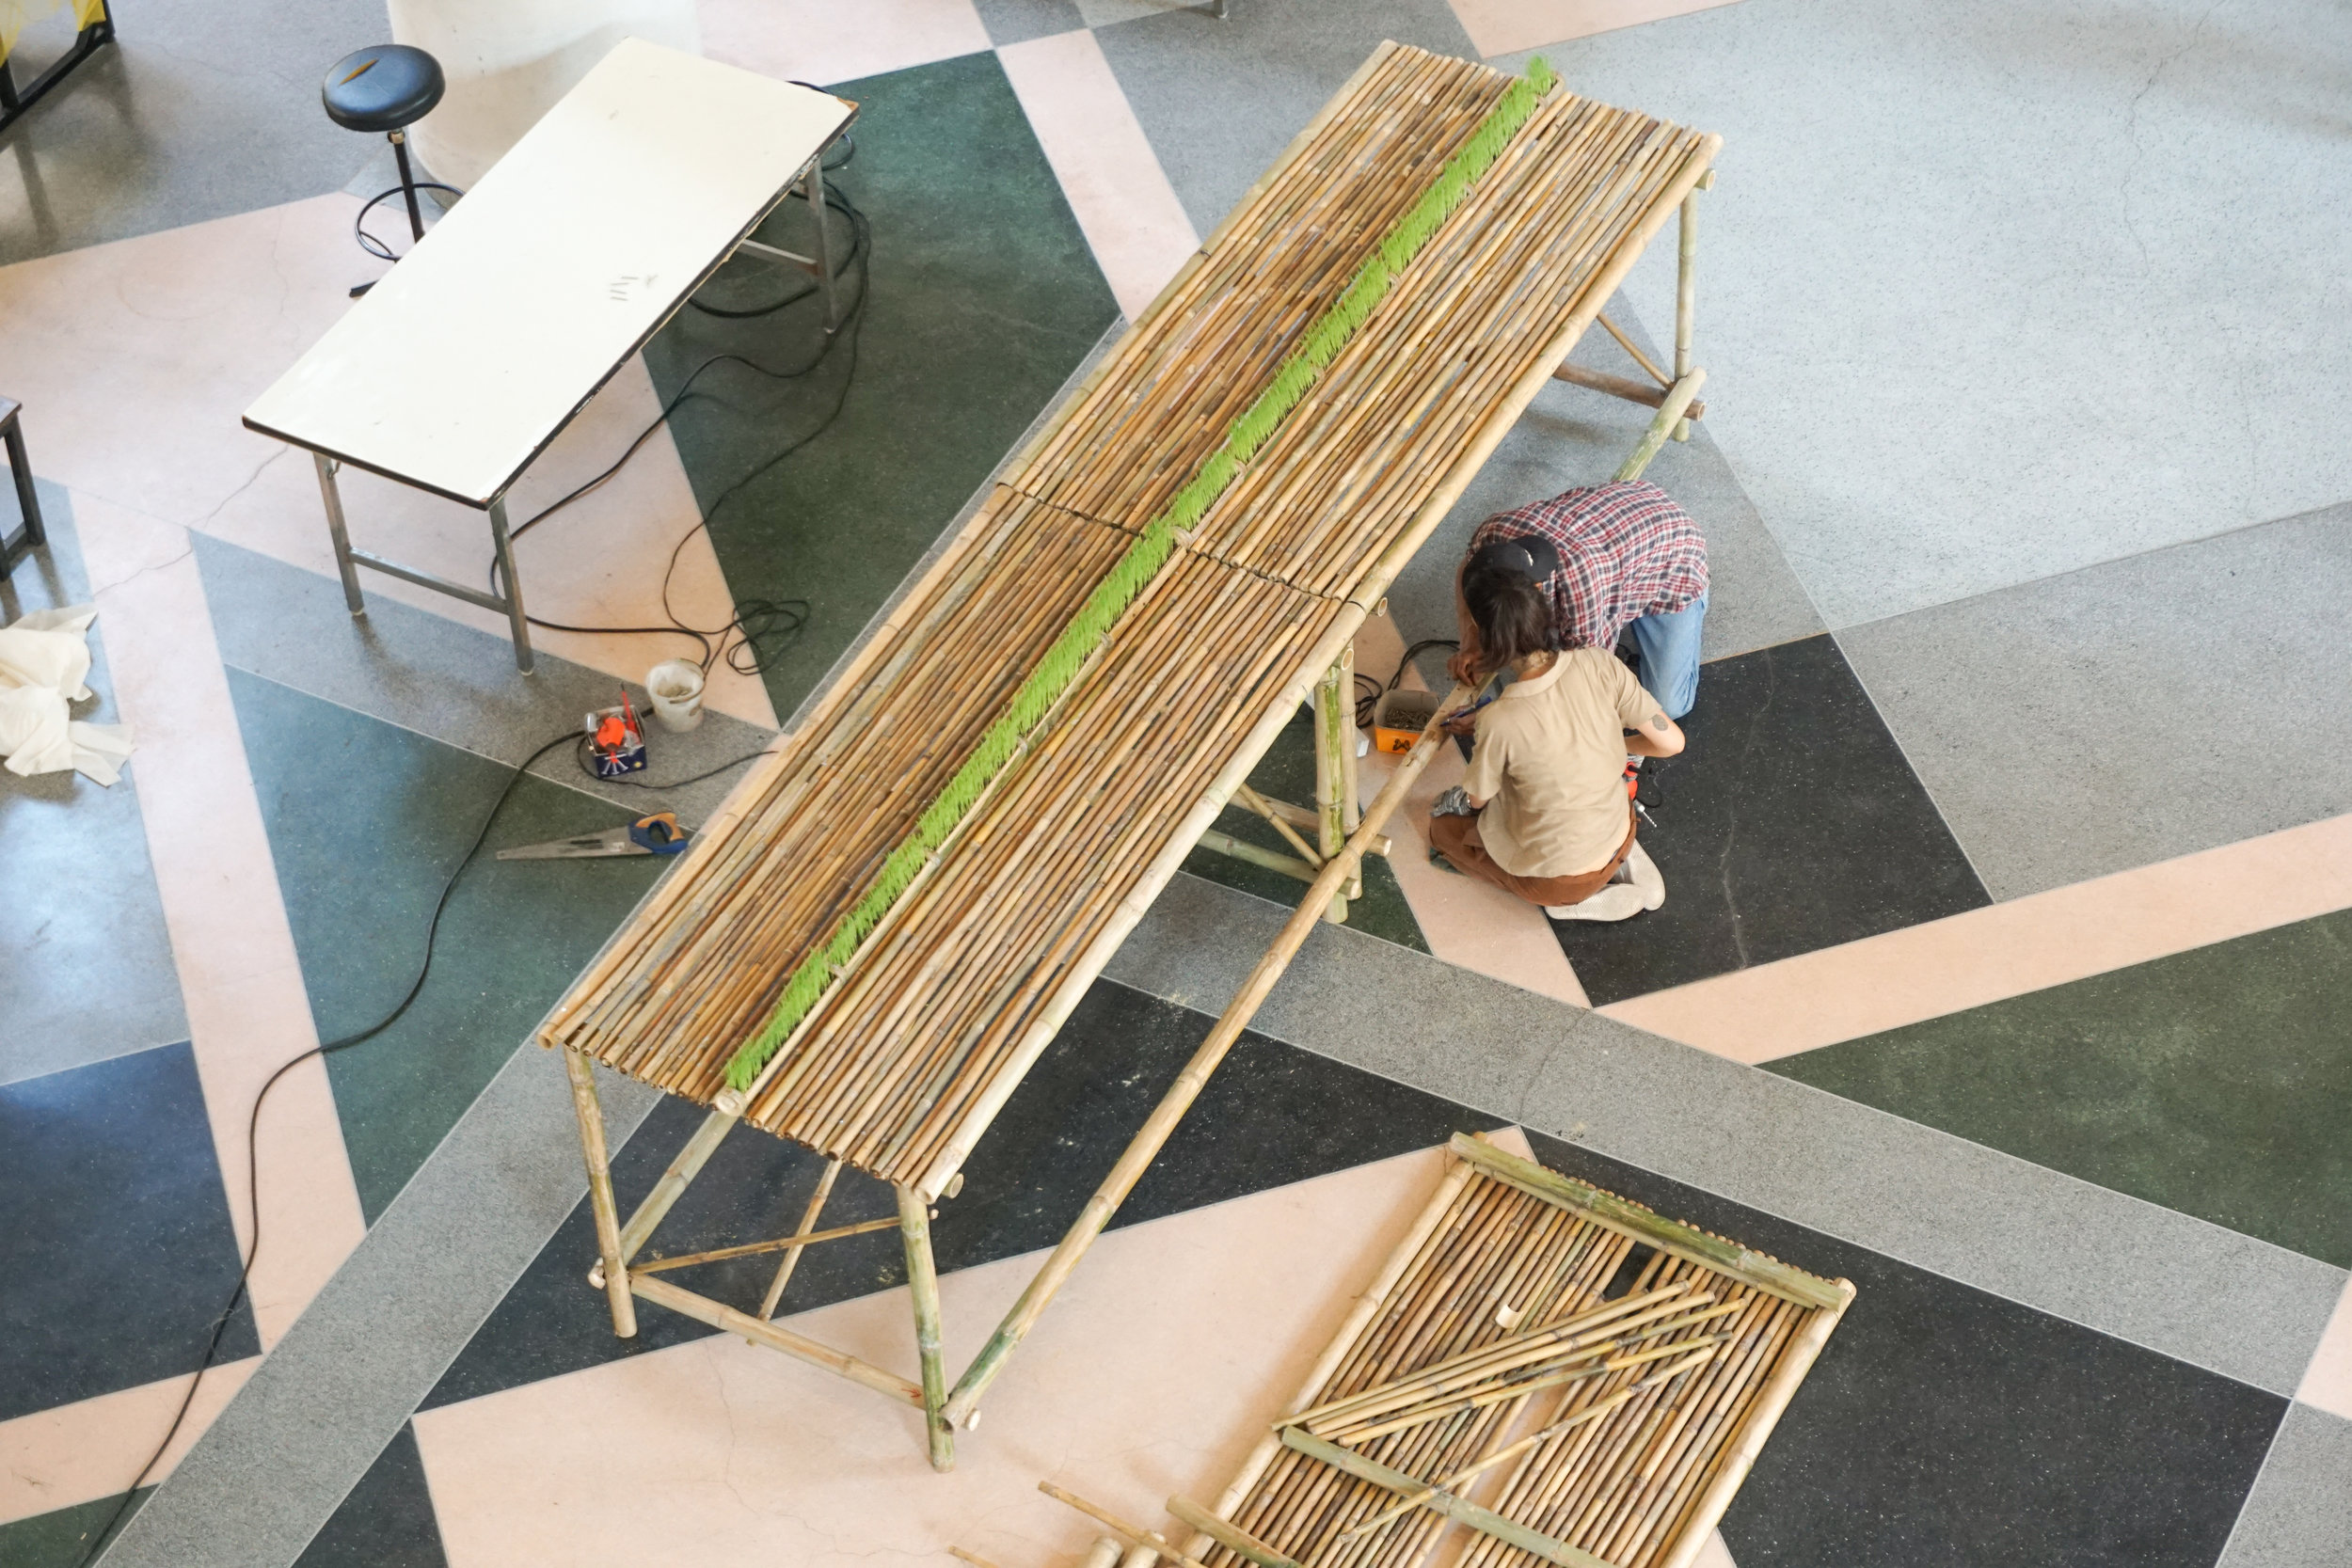 City Farming for a Sustainable City Event: Building a big bamboo table with a roll of micro greens